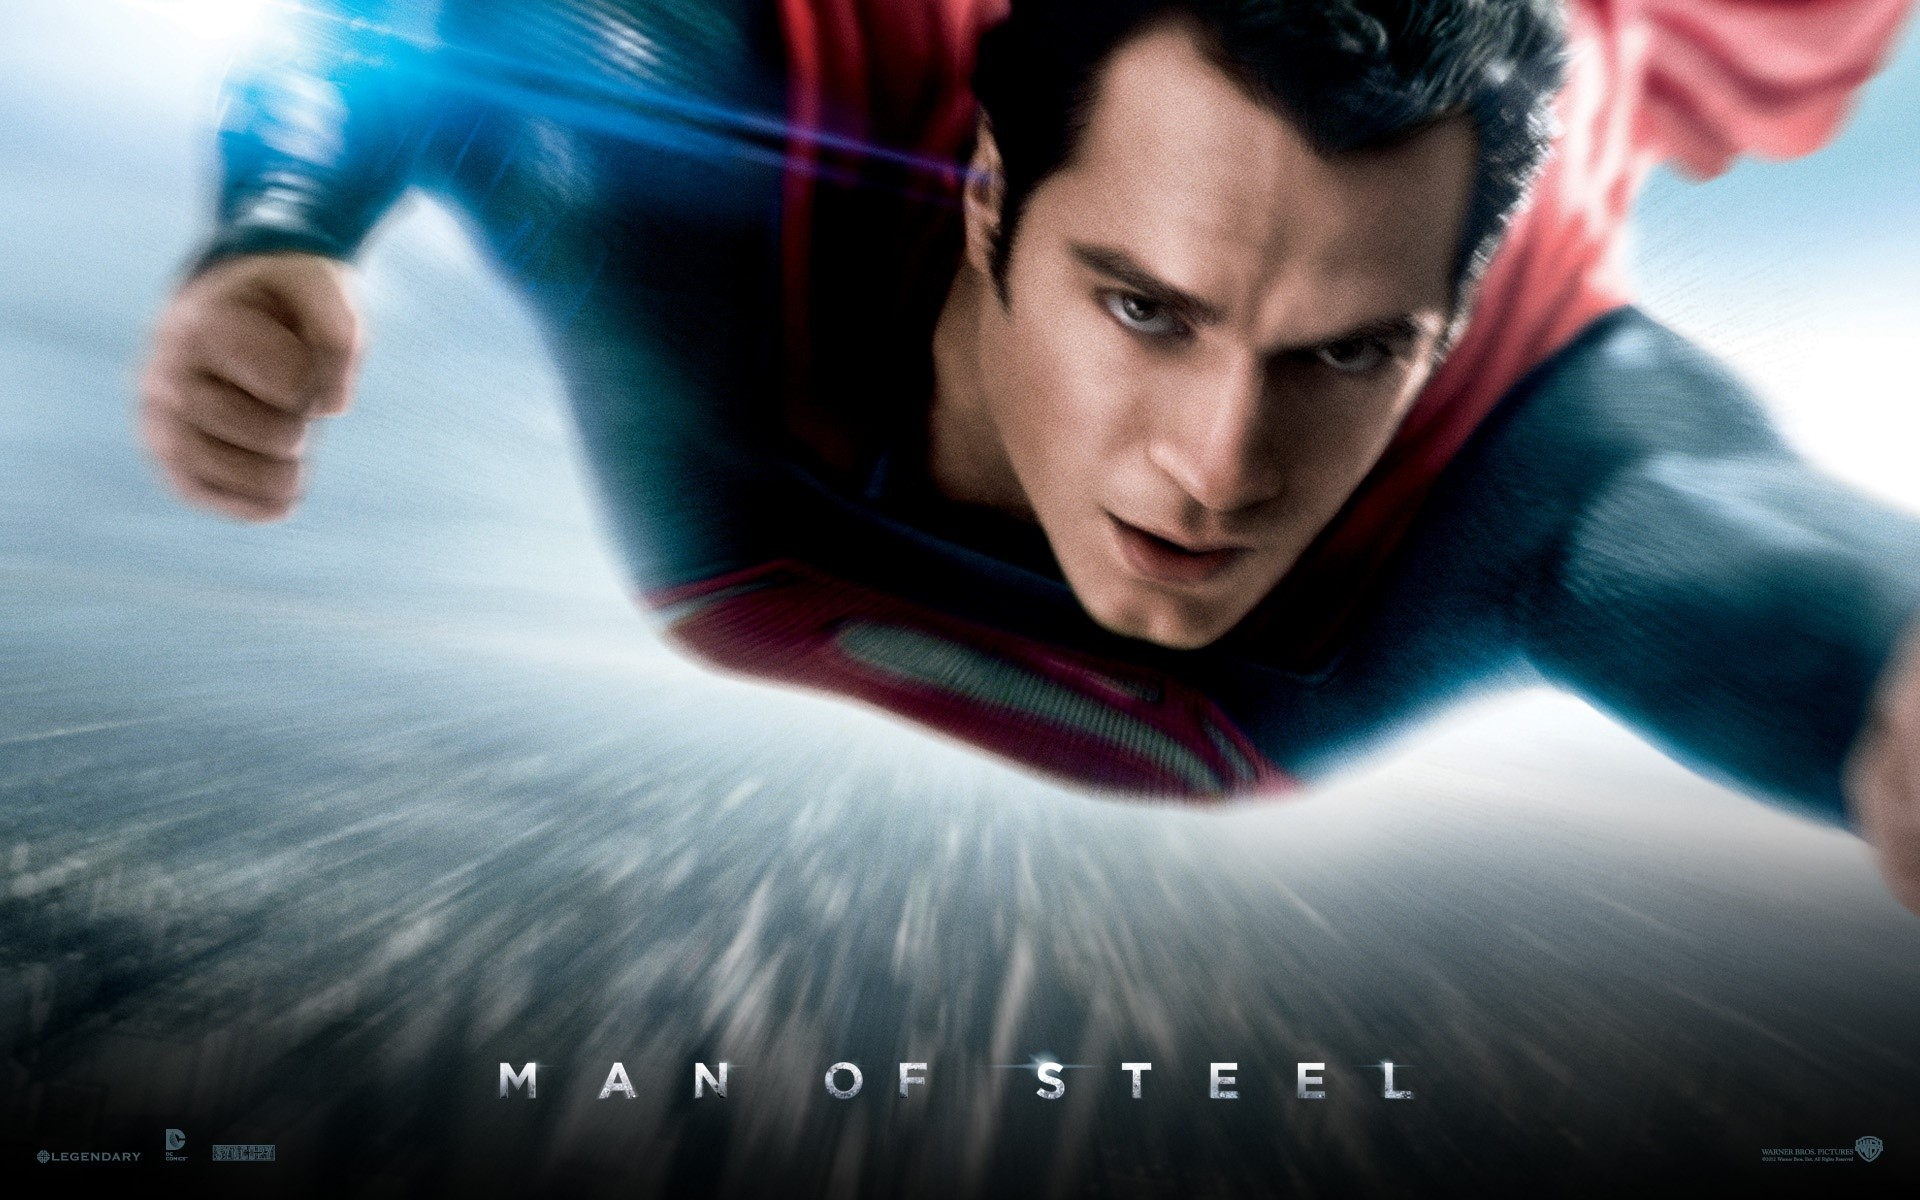 Wallpaper Man of steel, superman